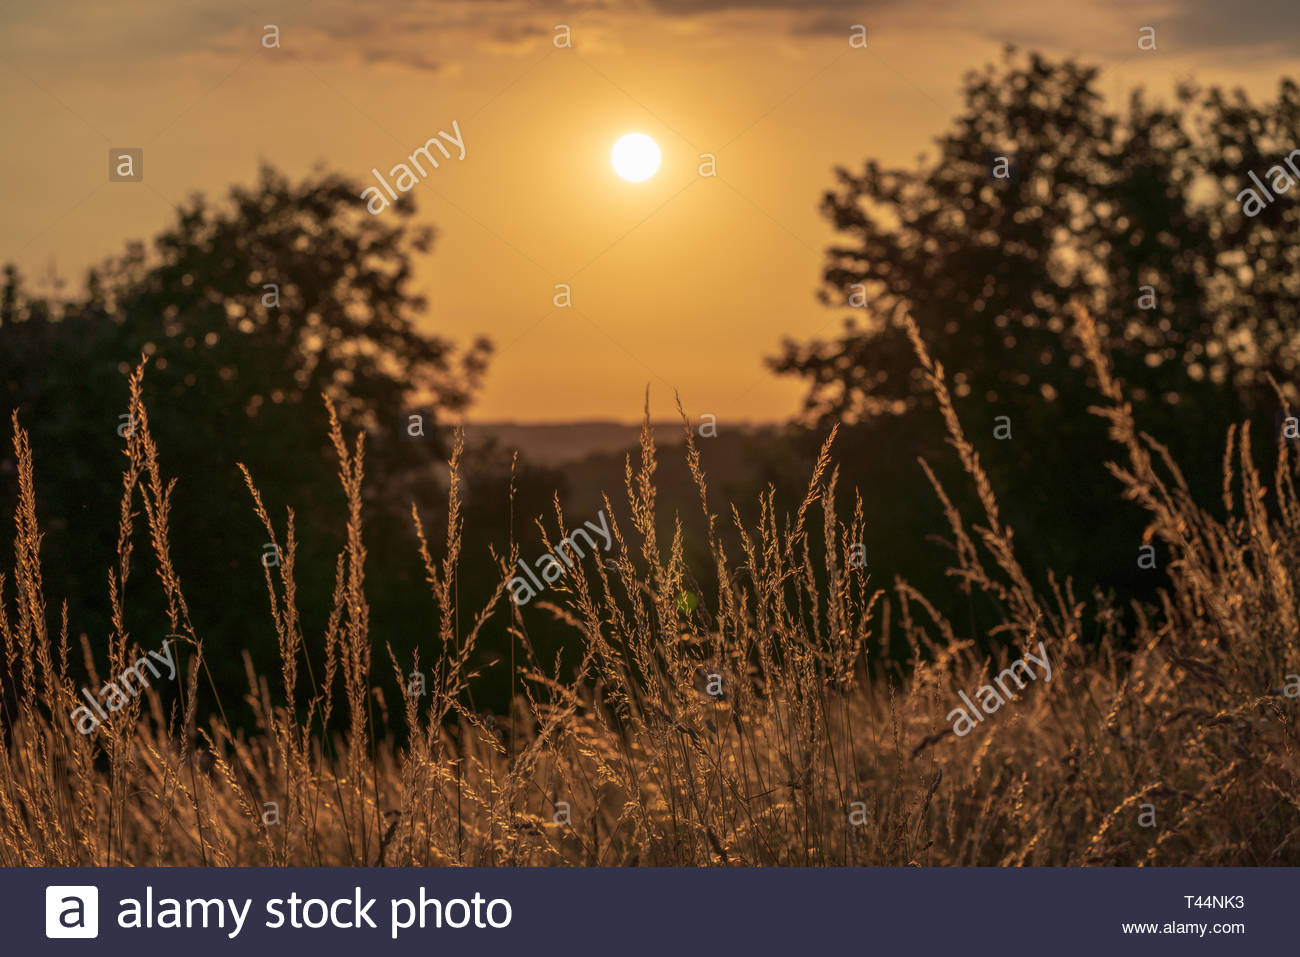 Countryside of the Chiltern Hills in England at sunset - Stock Image